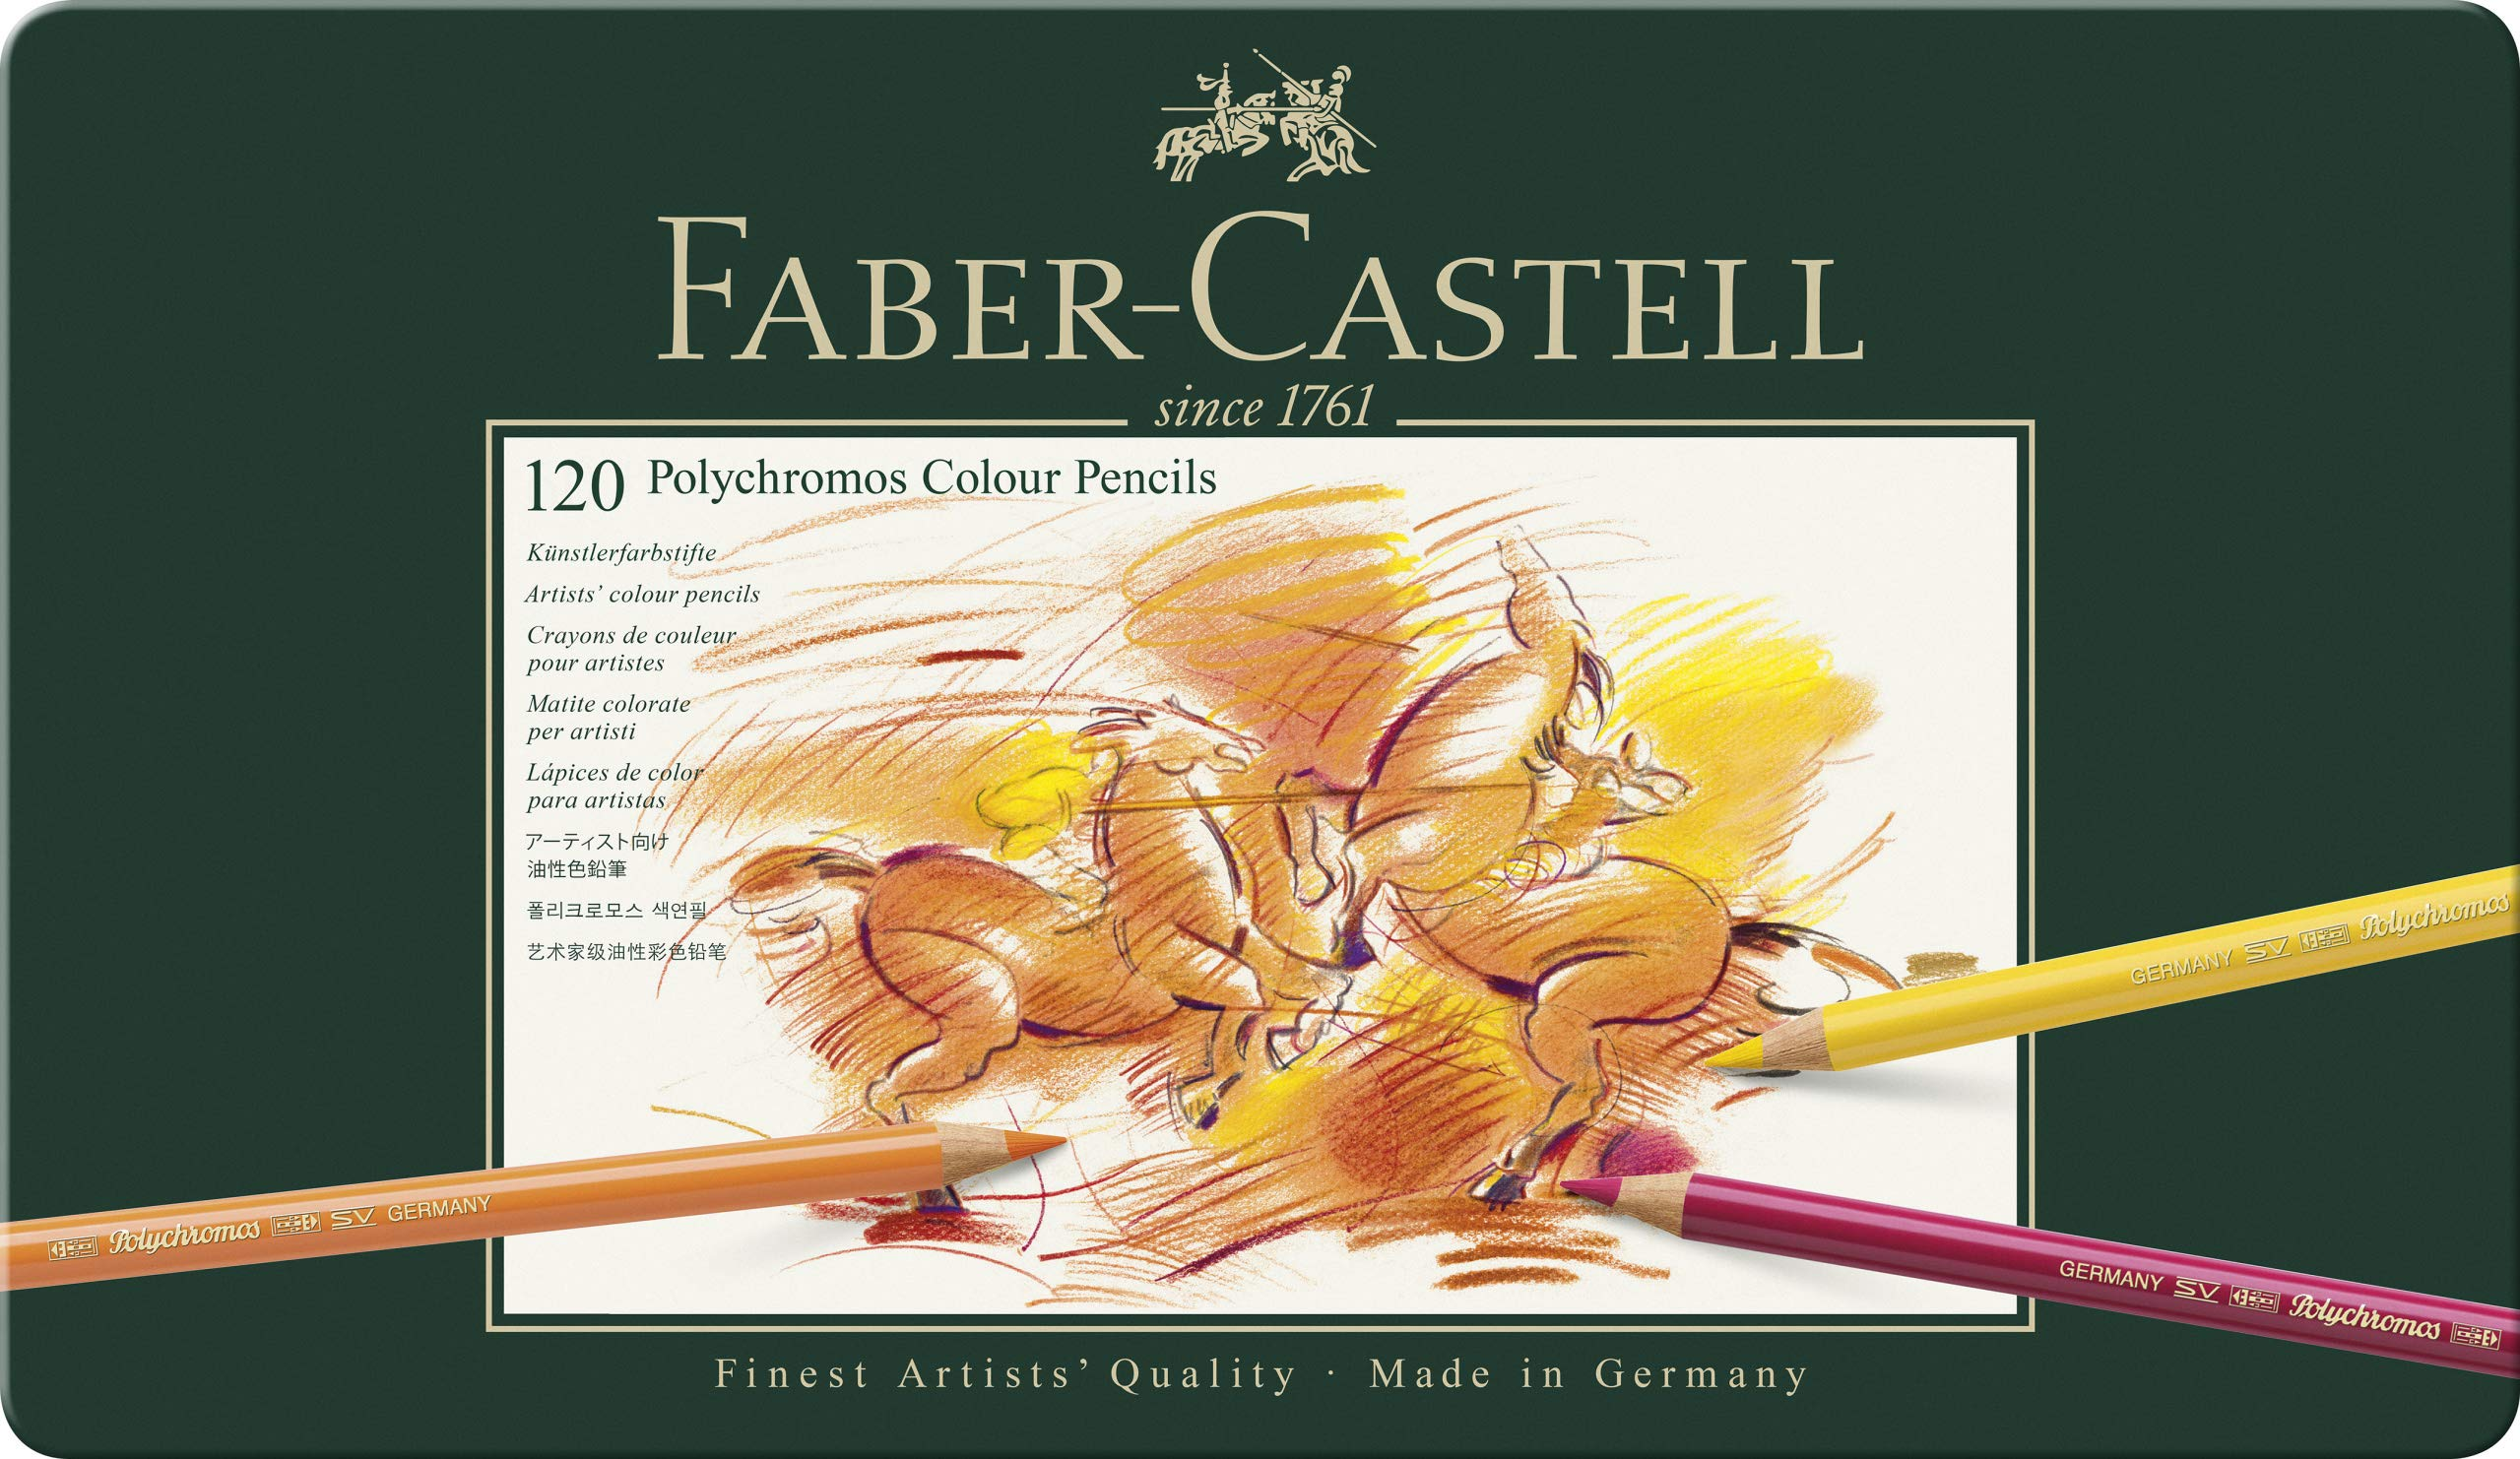 Faber-Castell Polychromos Artists' Color Pencils - Tin of 120 Colors - Premium Quality Artist Pencils by Faber-Castell